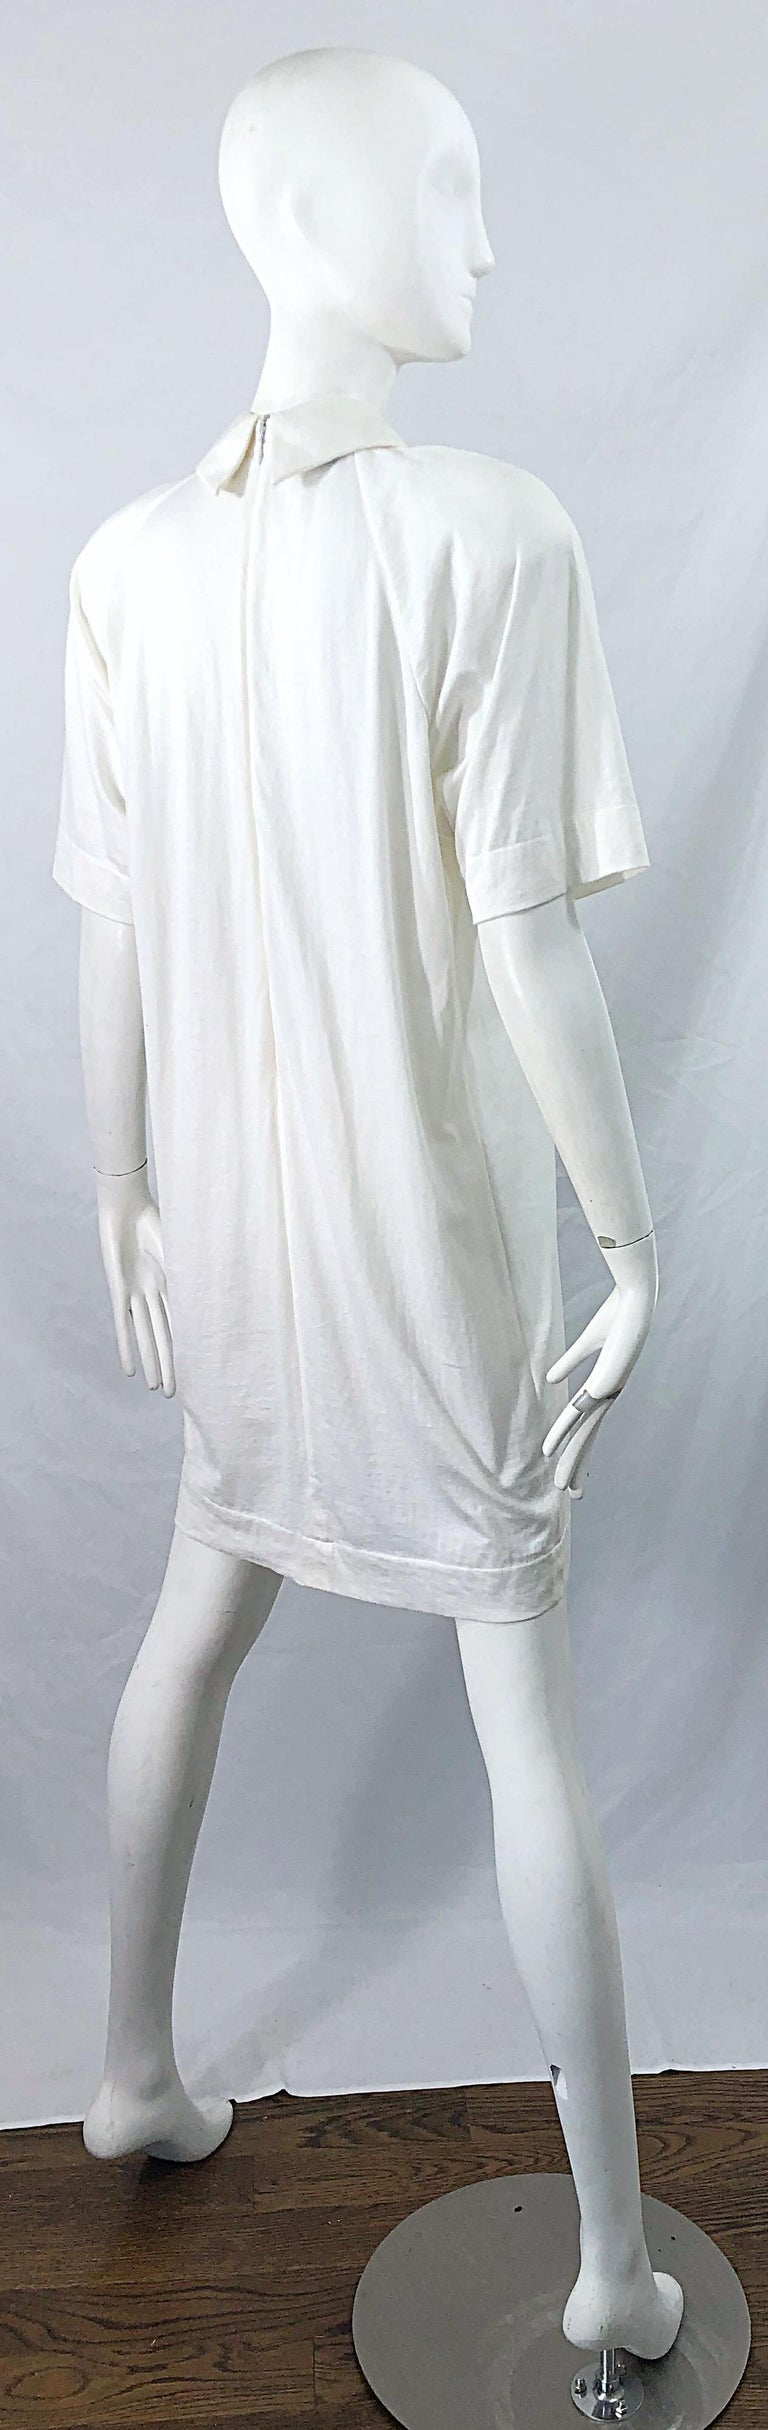 1990s James Purcell Size 6 / 8 White Cotton Vintage 90s T-Shirt Dress In Excellent Condition For Sale In Chicago, IL